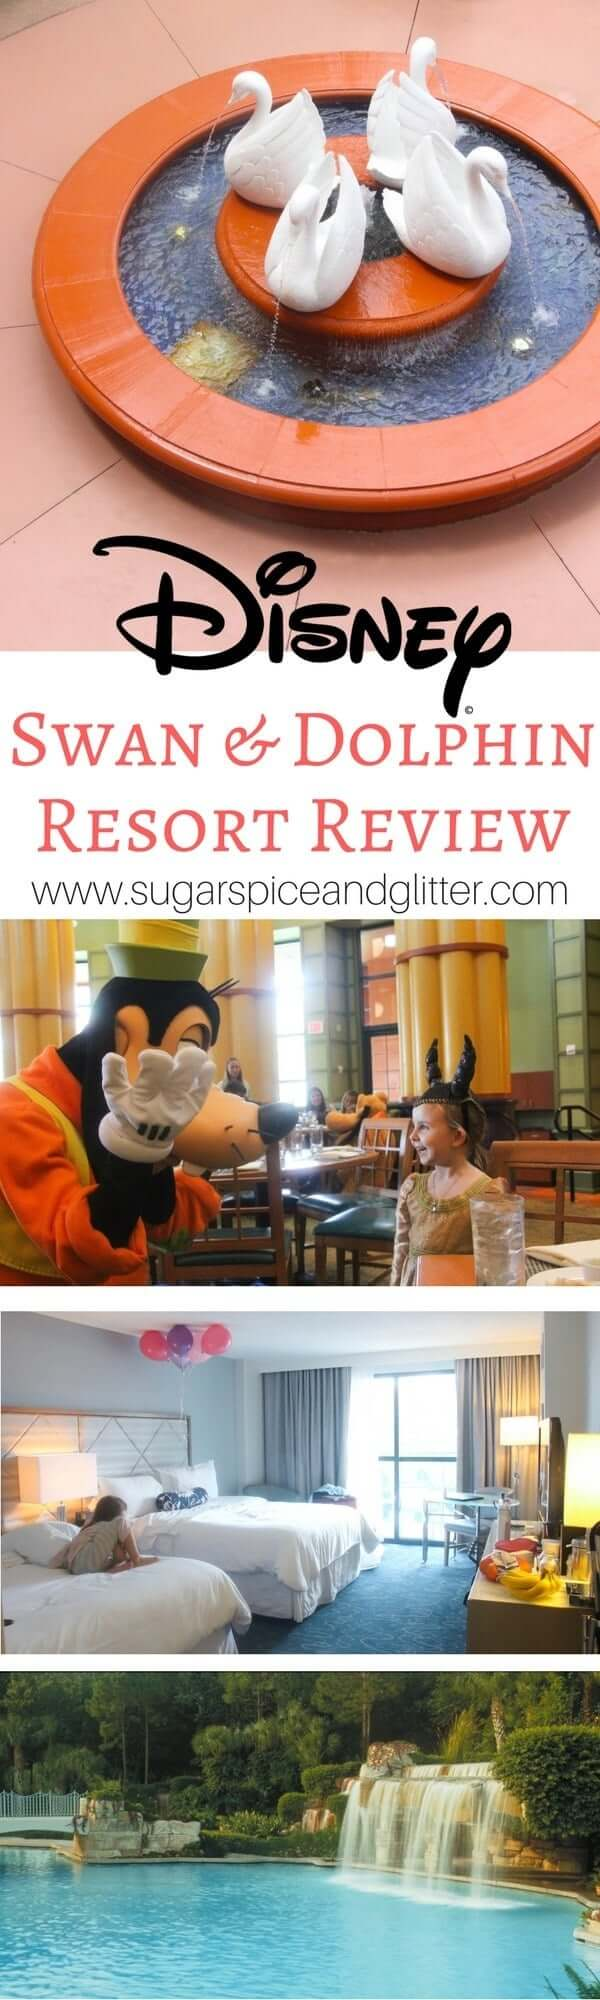 An honest and in-depth review of the Swan and Dolphin resort by a Disney mom. The food, the character meals, the pool complex, entertainment and more - this mom shares the good and the bad about her experience at the Swan